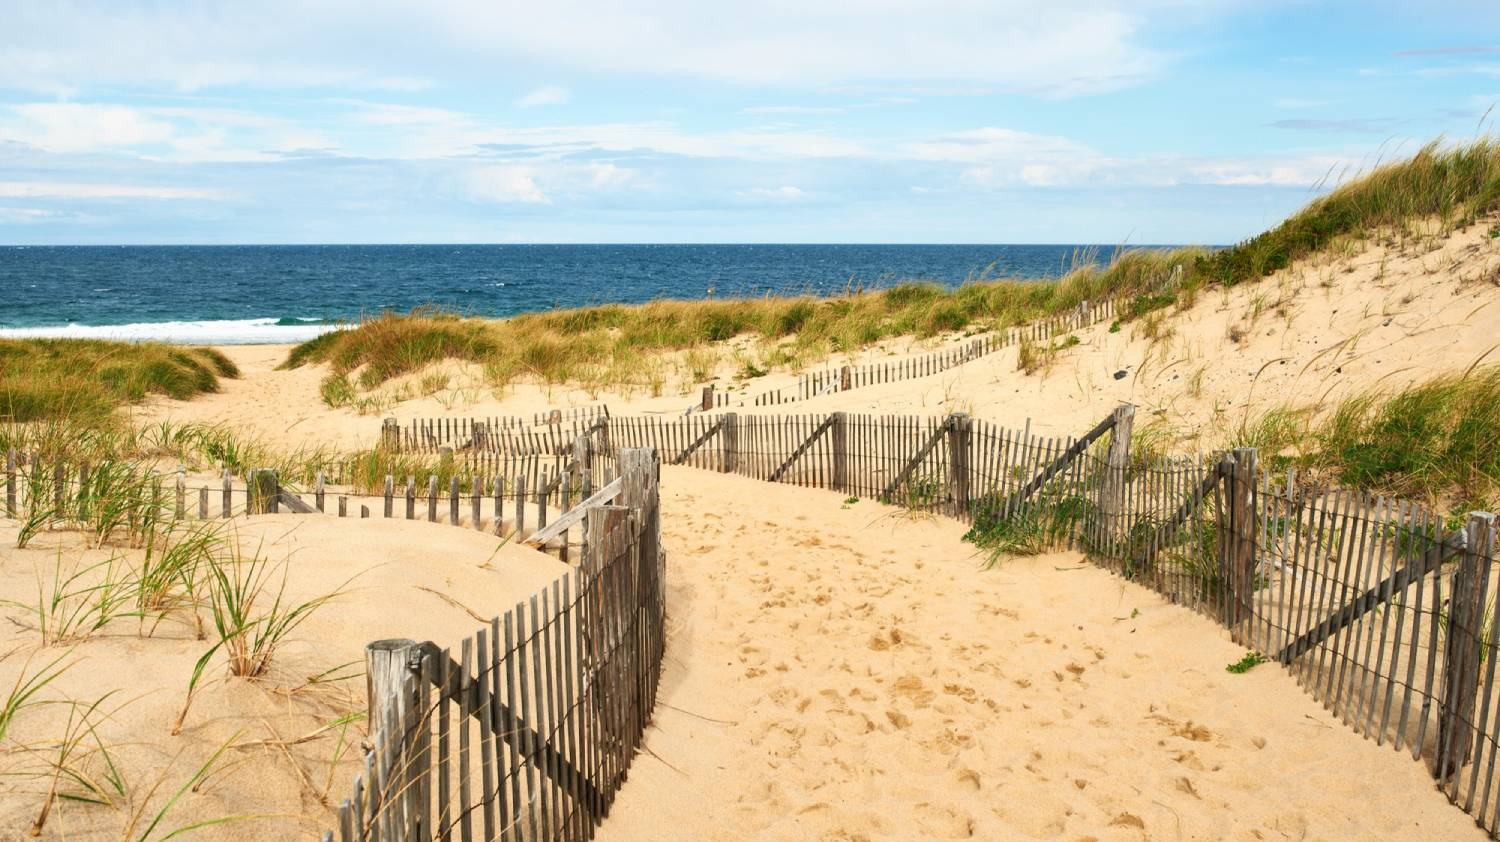 Cape Cod - Things To Do In Boston